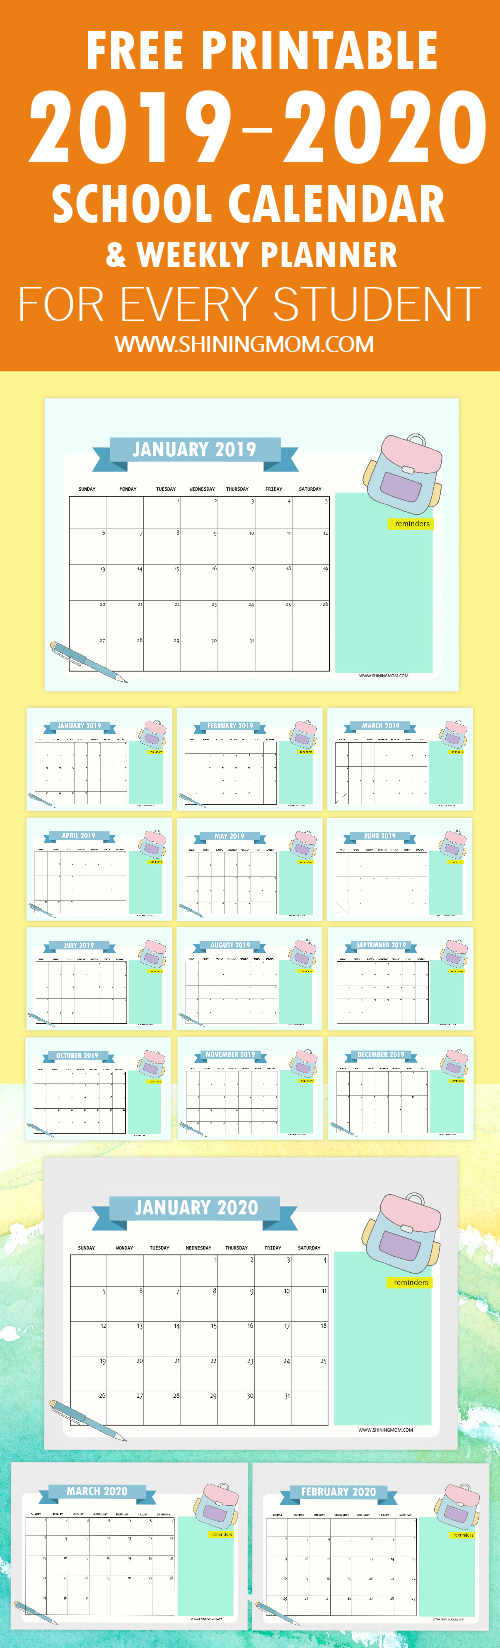 FREE 2019 to 2020 school calendar free printable